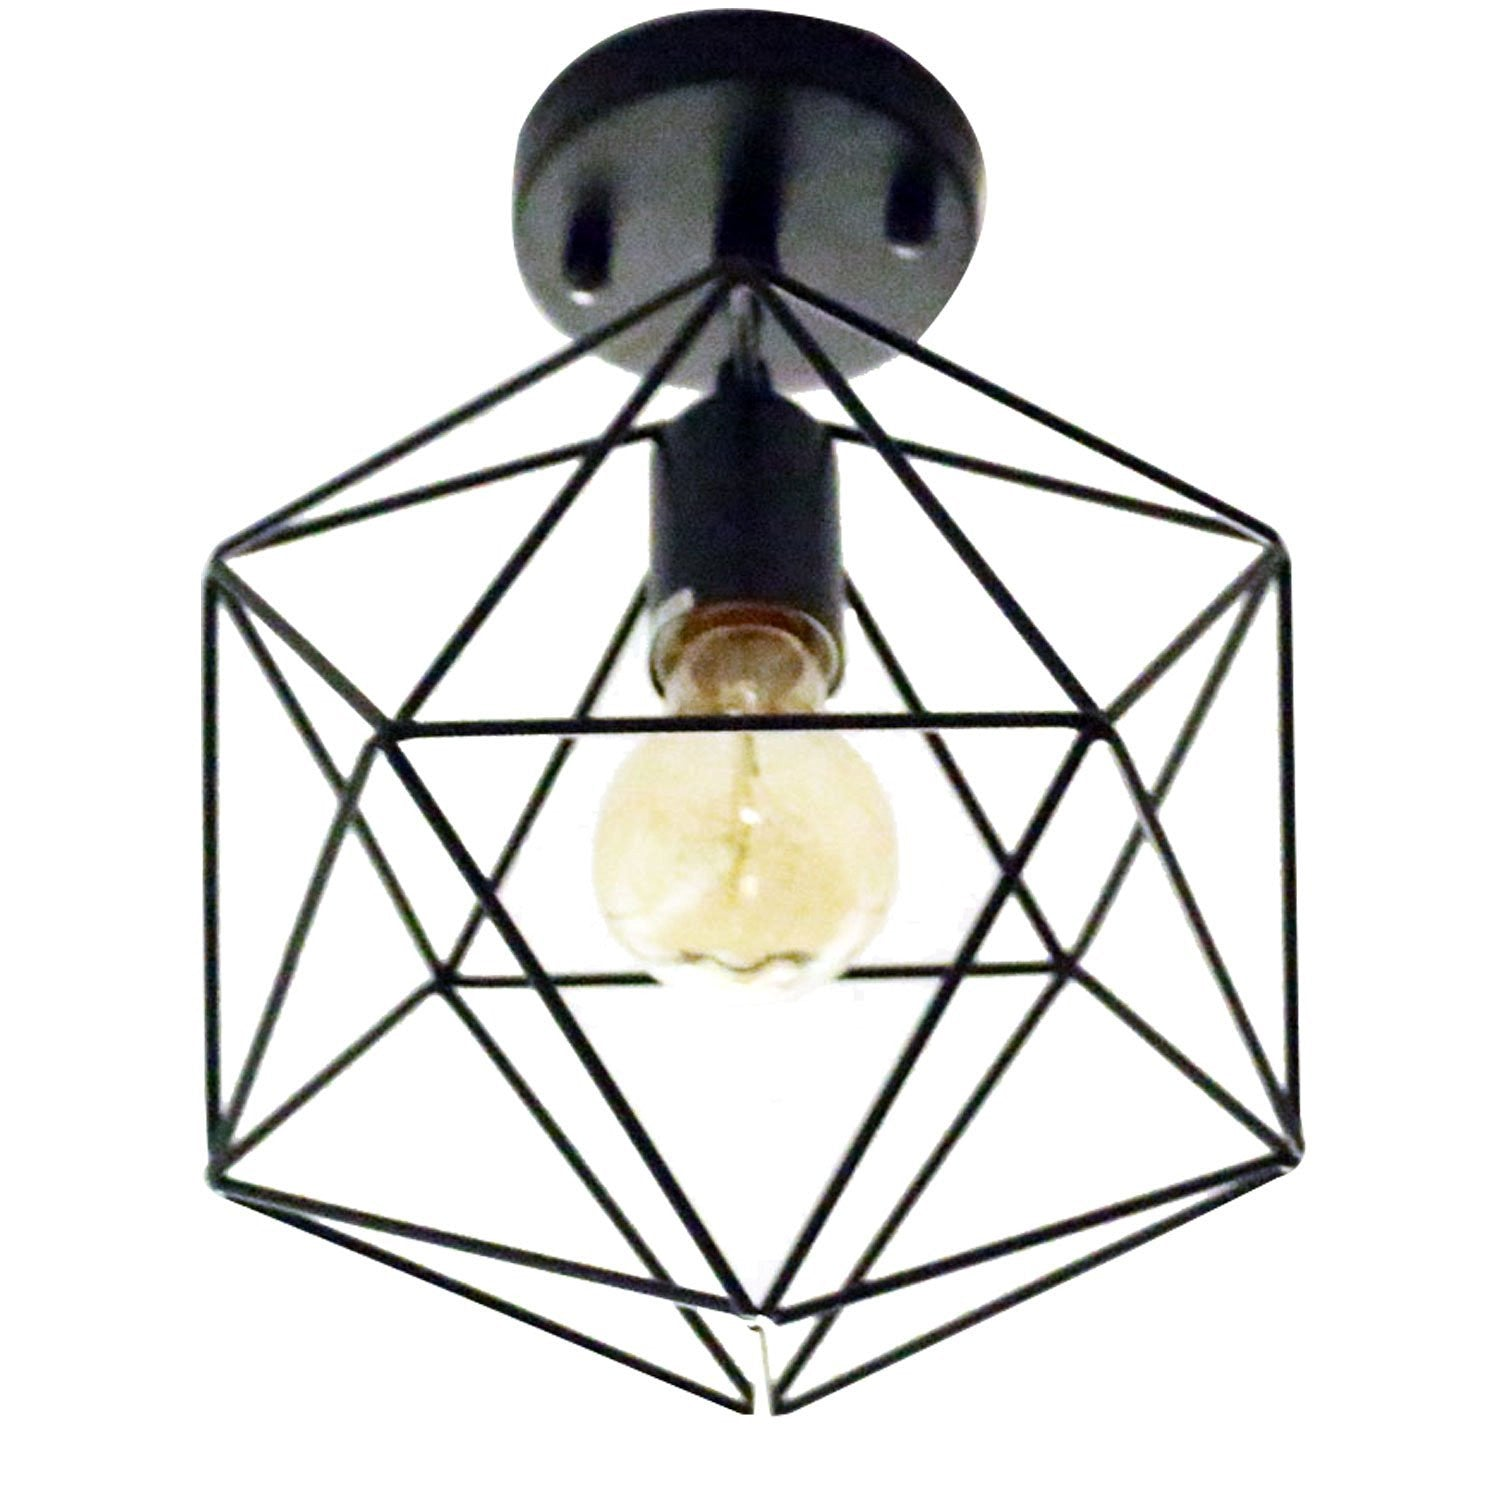 Unitary brand antique black metal cage shade semi flush mount unitary brand antique black metal cage shade semi flush mount ceiling light with 1 e26 bulb socket 40w painted finish aloadofball Gallery